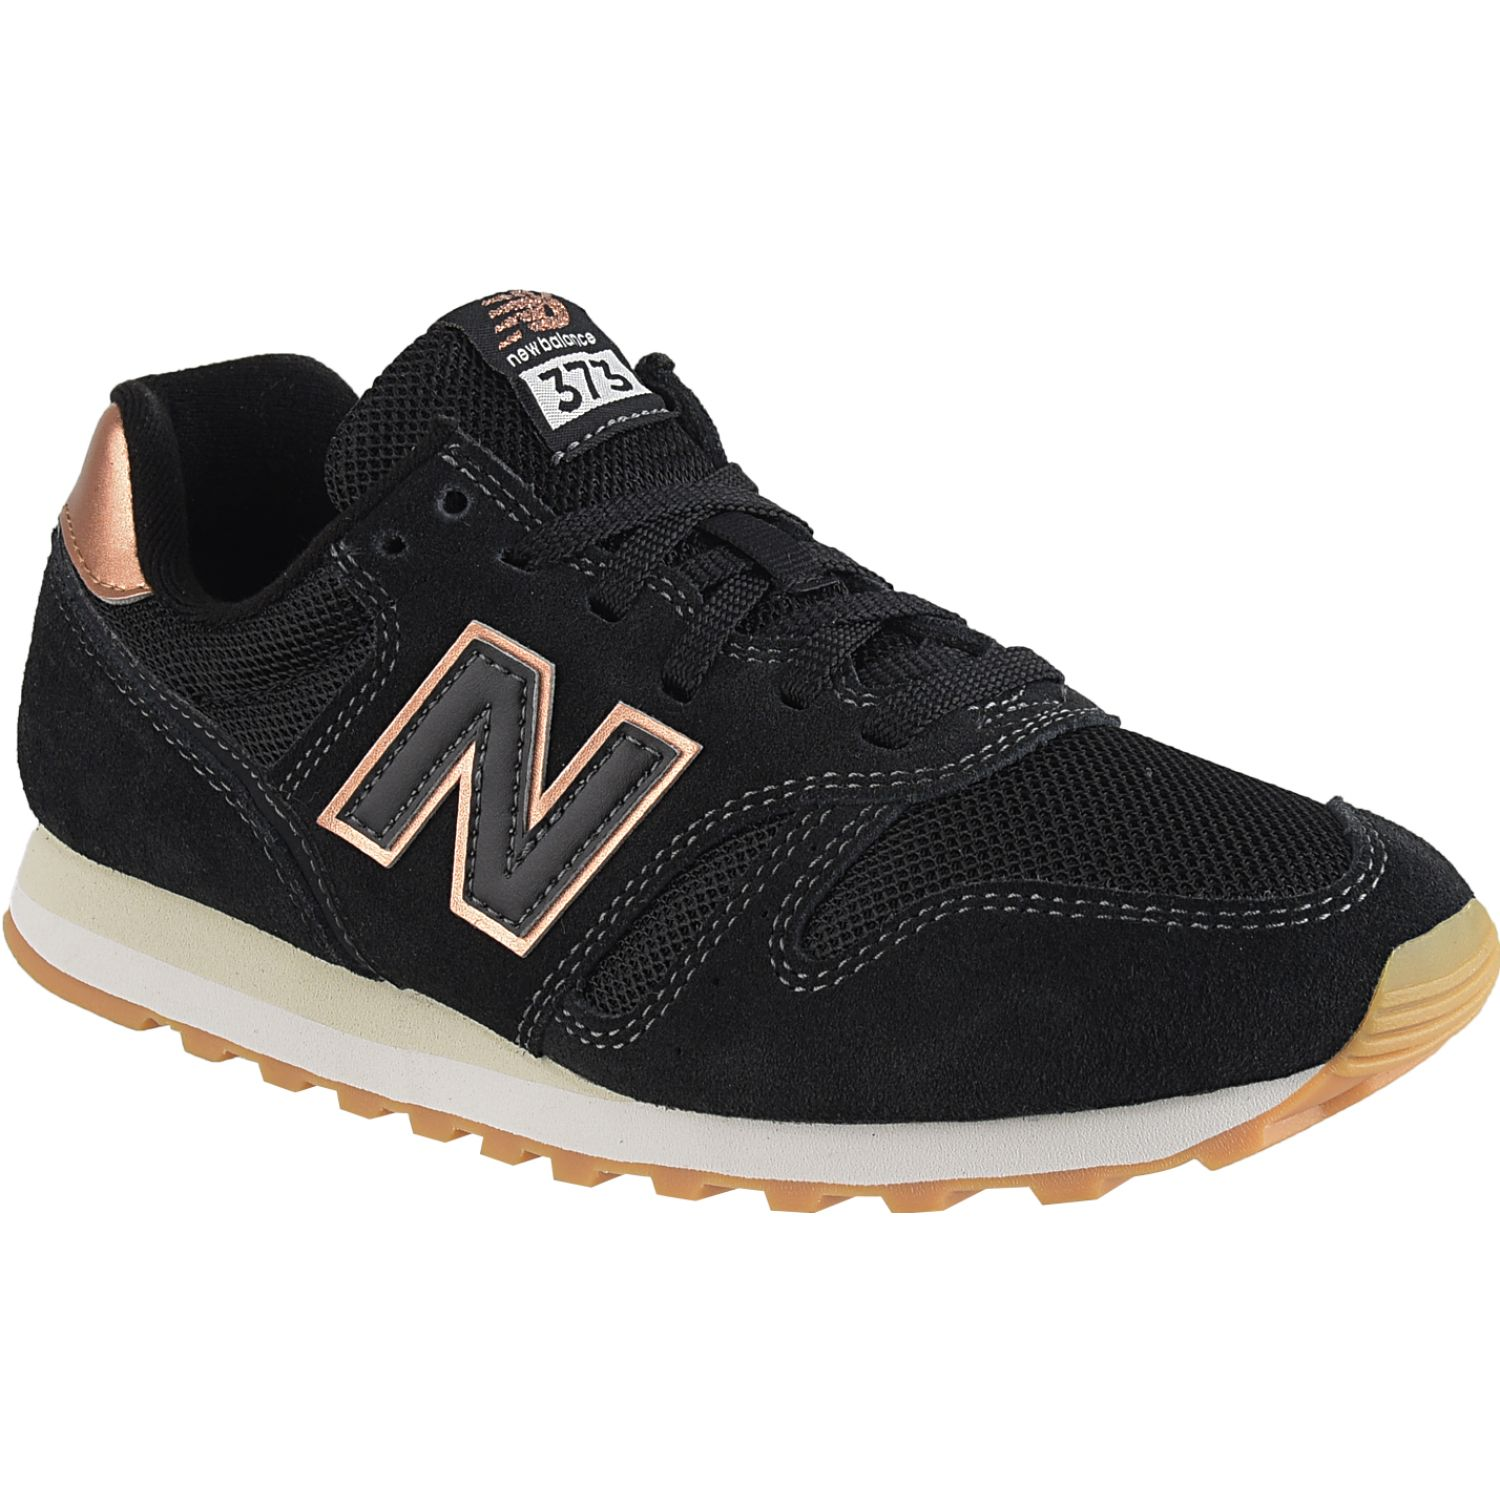 New Balance 373 Negro / dorado Walking